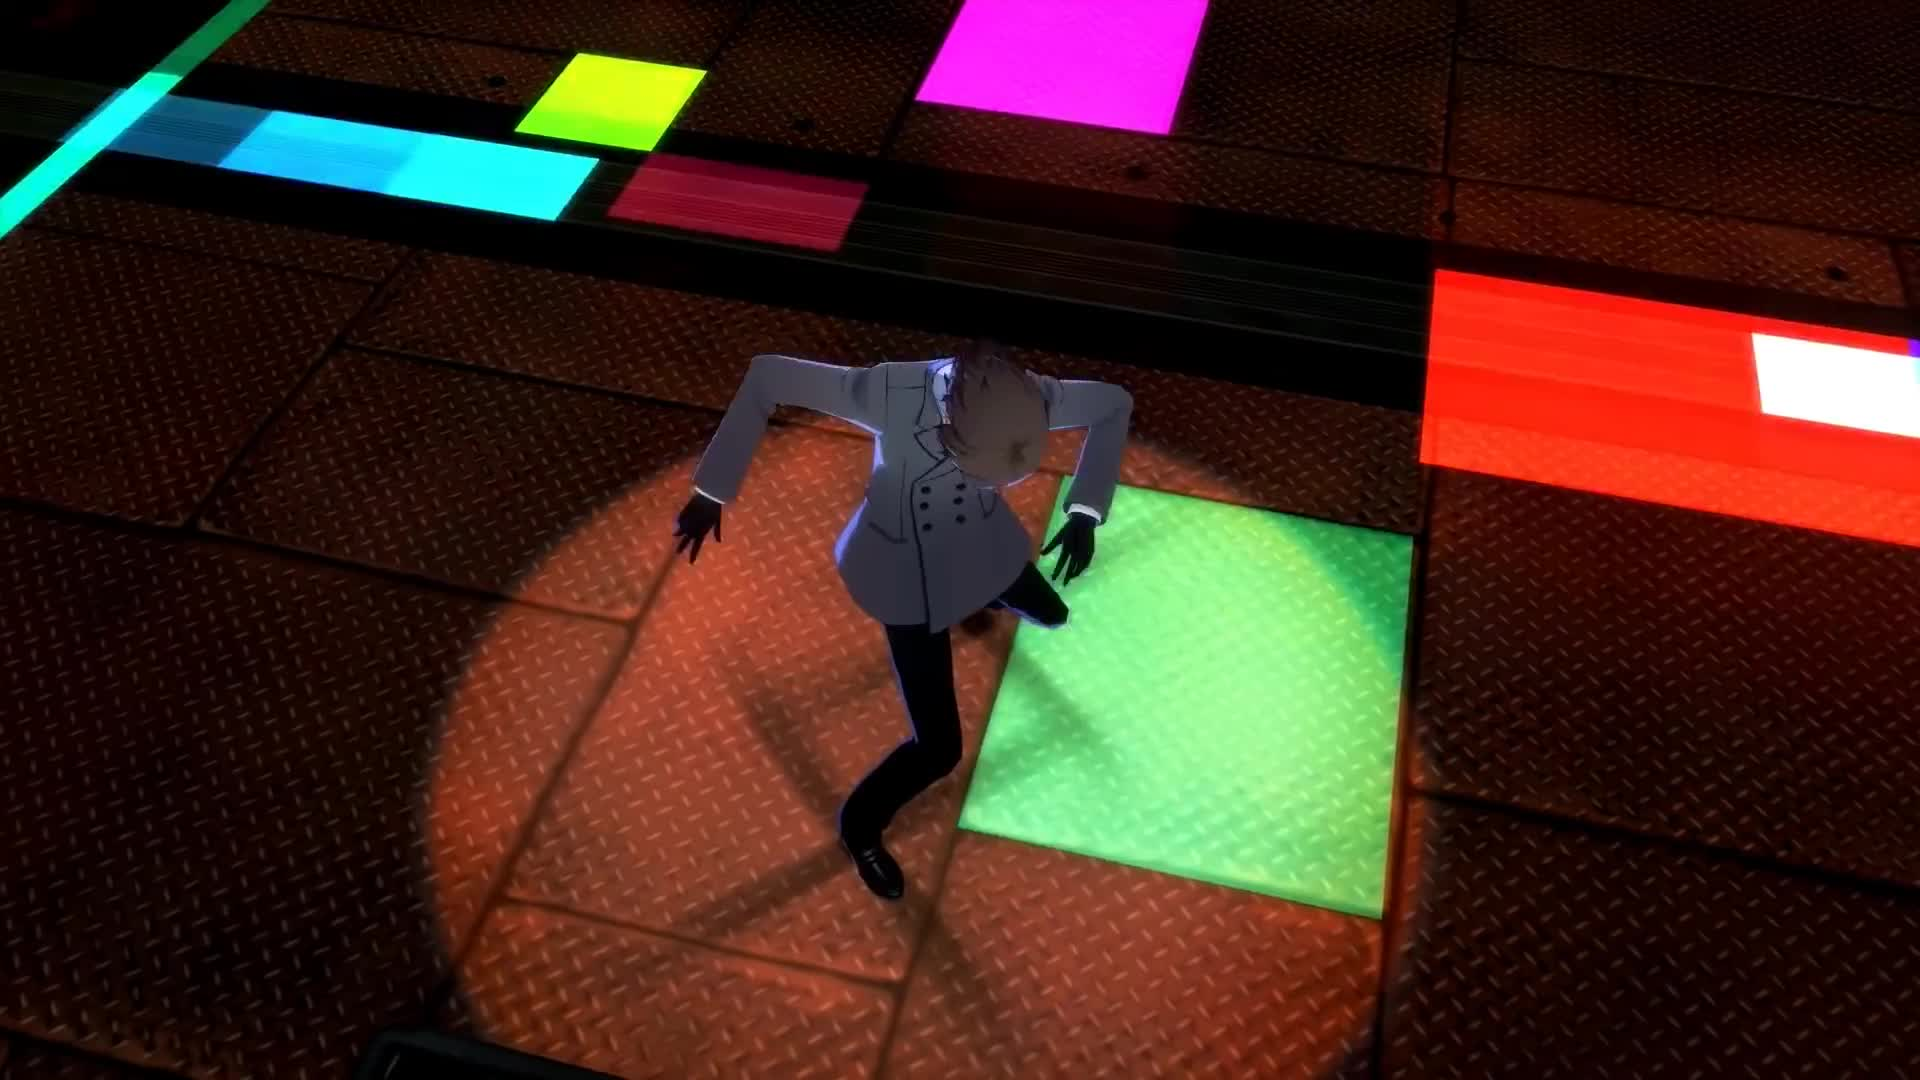 Persona 5 Dancing All Night Gifs Search | Search & Share on